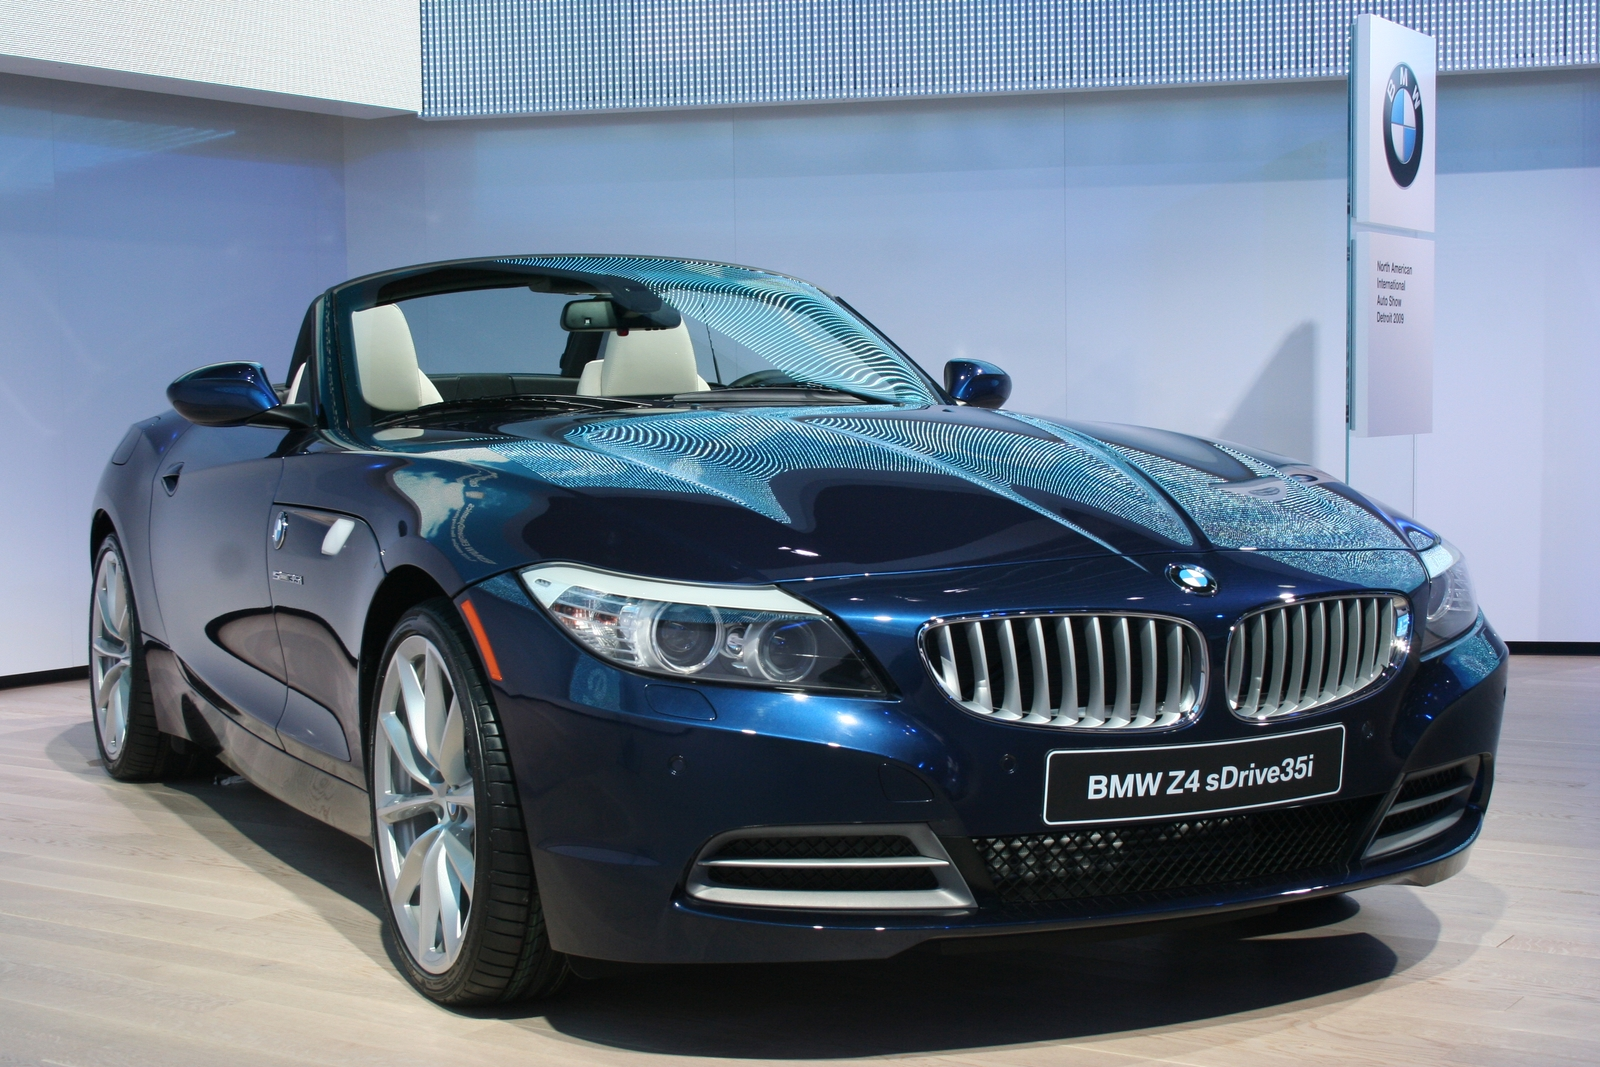 2009 Bmw Z4 Ordering Guide And Options